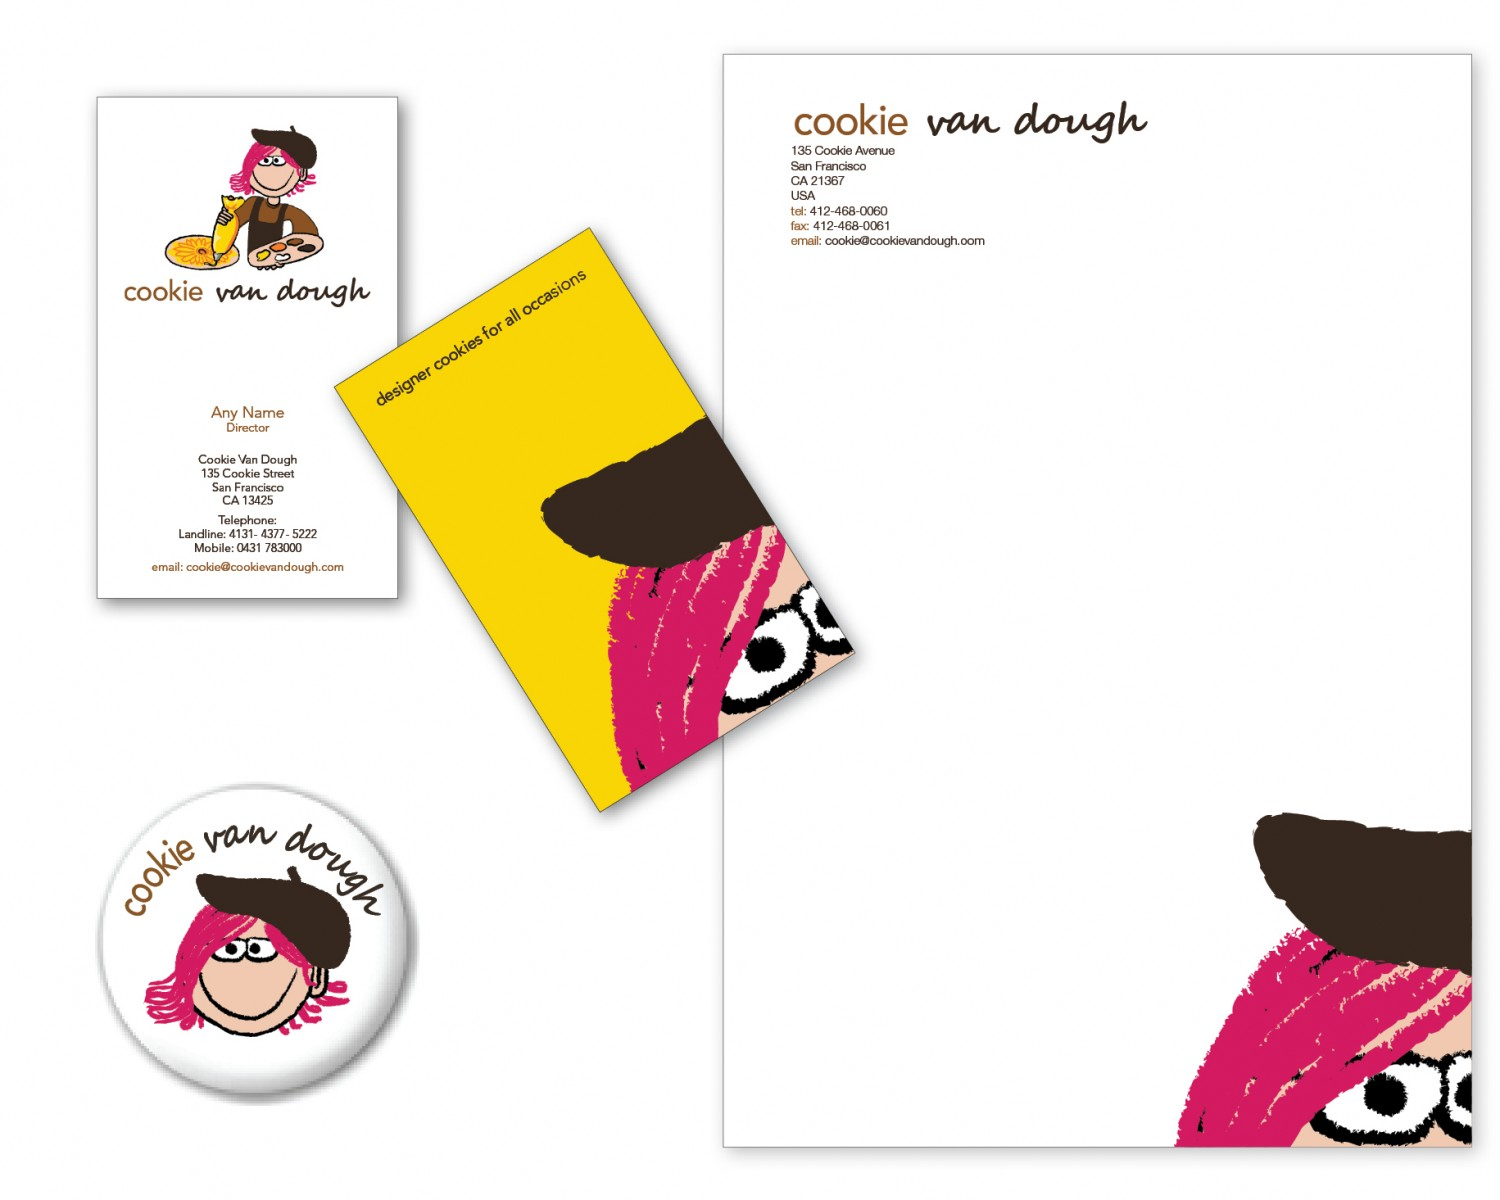 Business Card and Stationary Design for Cookie Van Dough